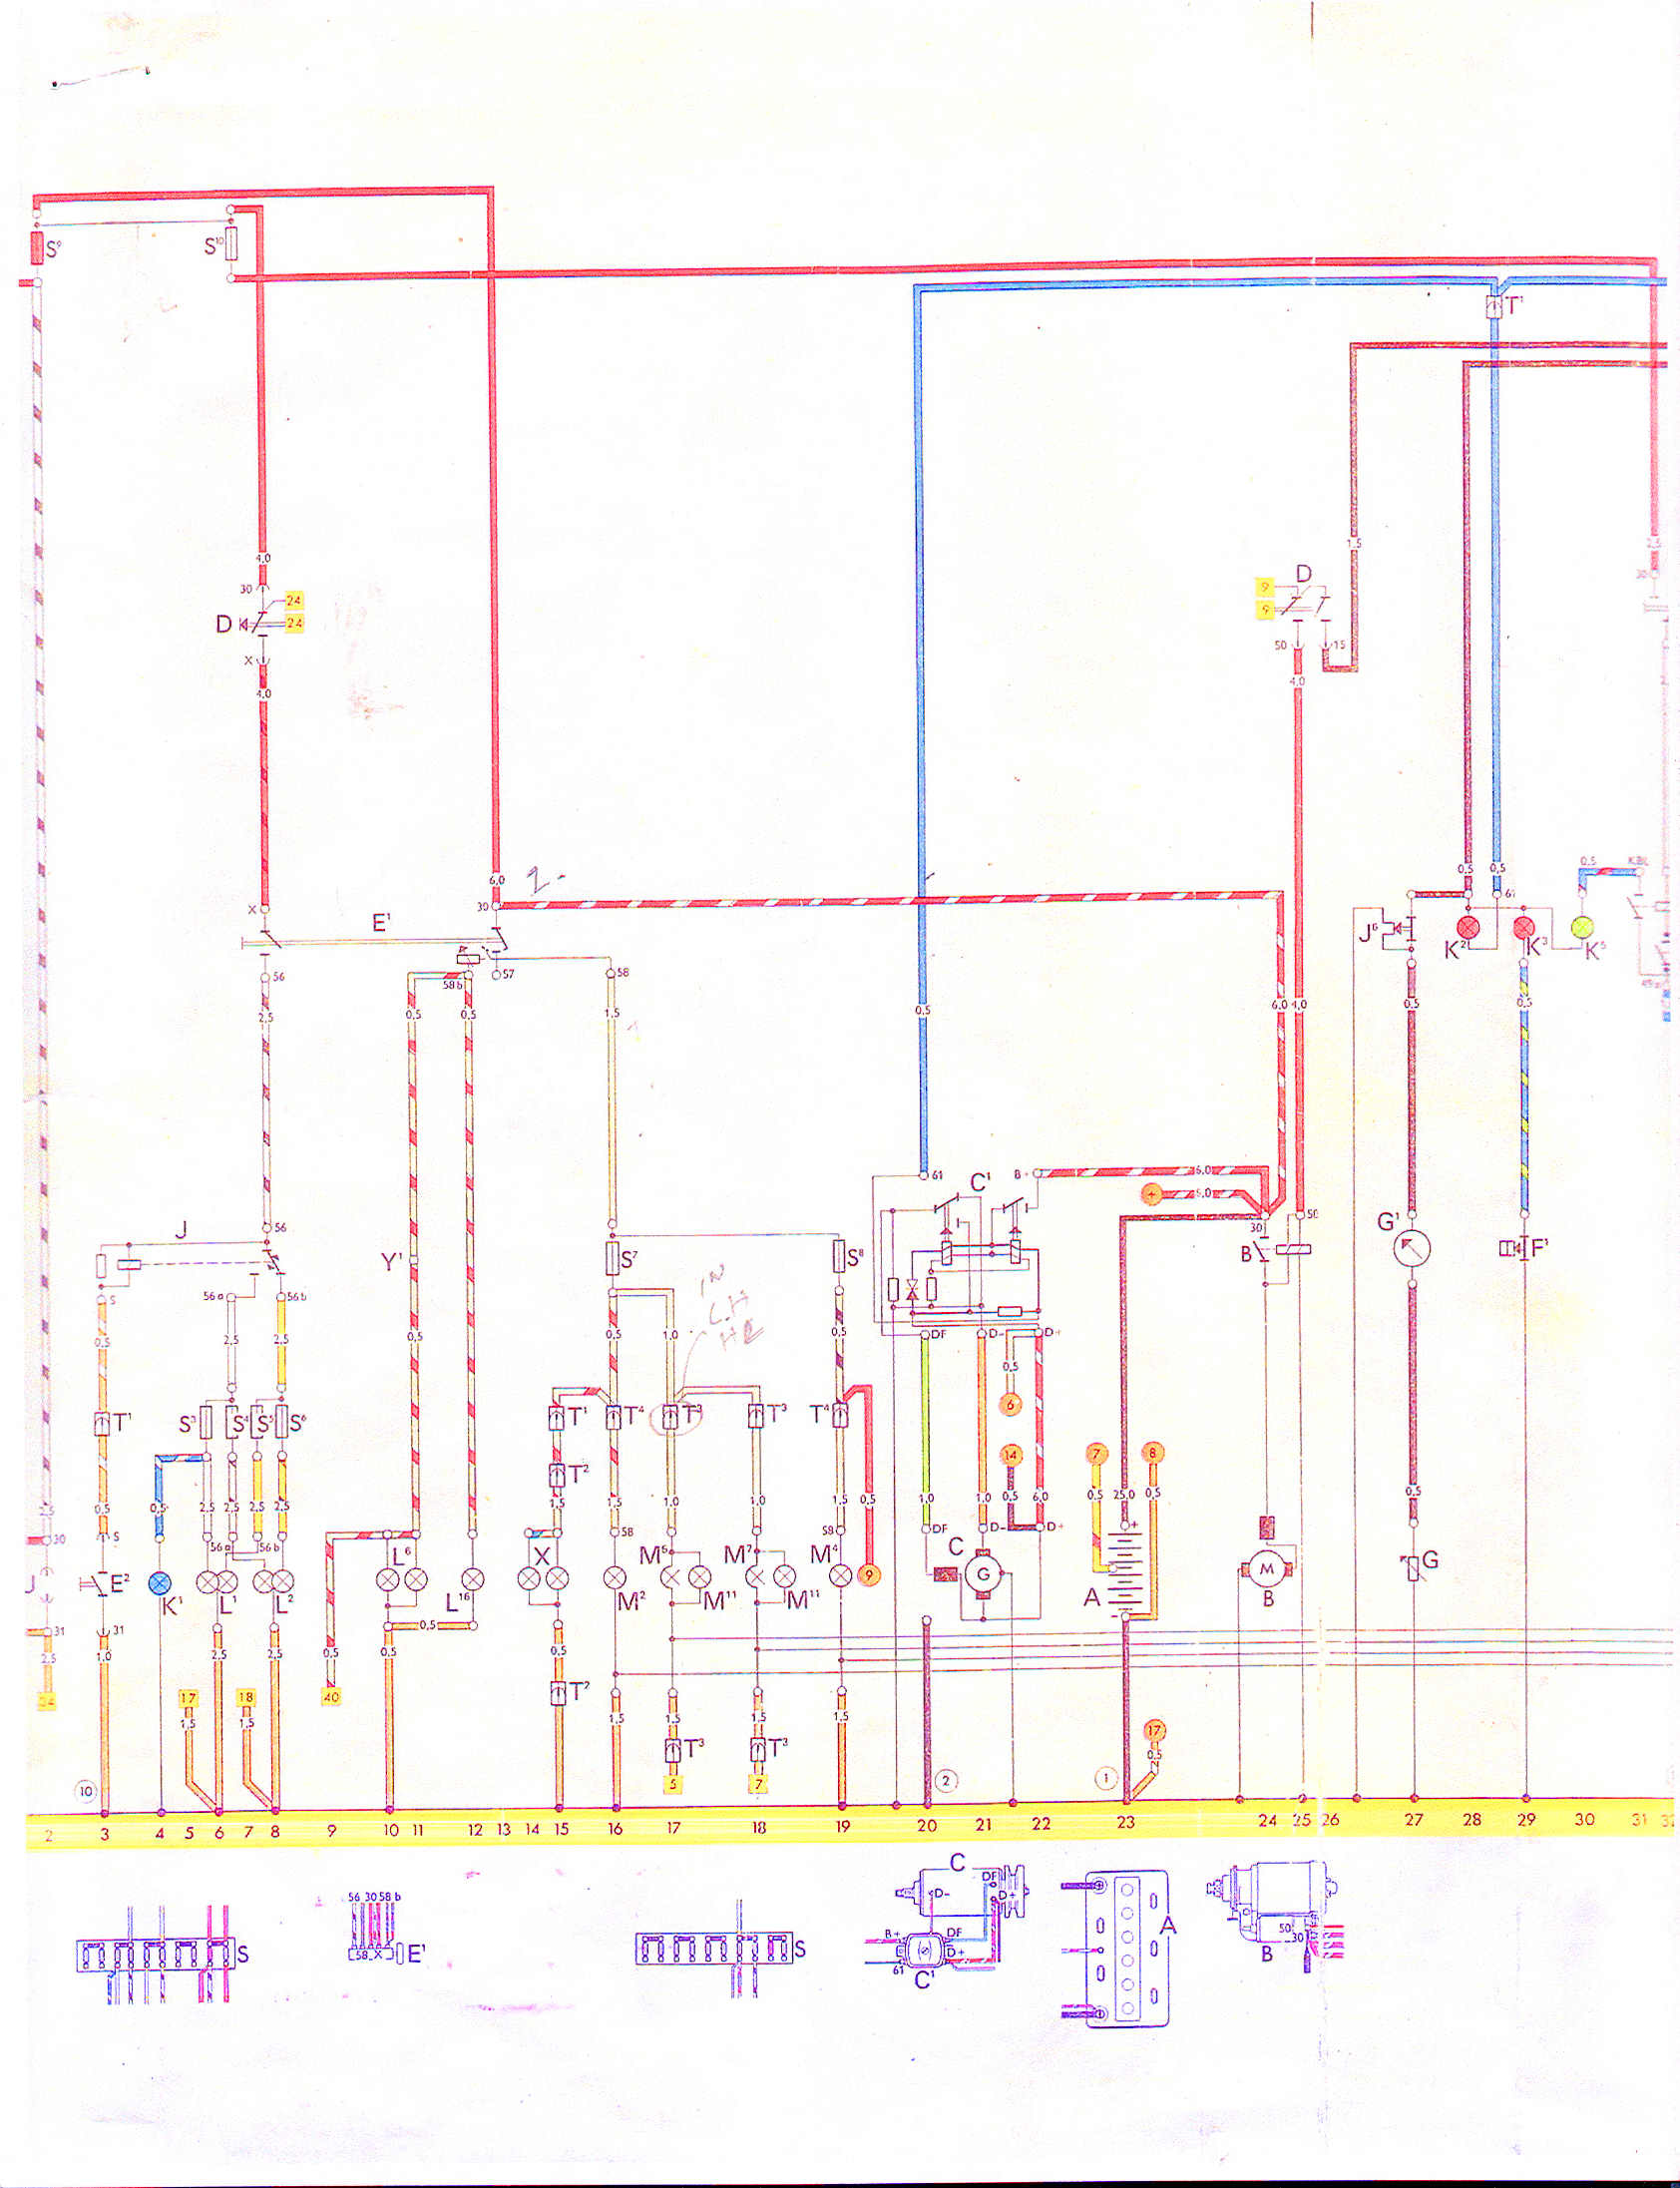 181 Vw Thing Wiring Diagram Start Building A Beetle Alternator Scematic Type Restoration Rh Vwthing Us 74